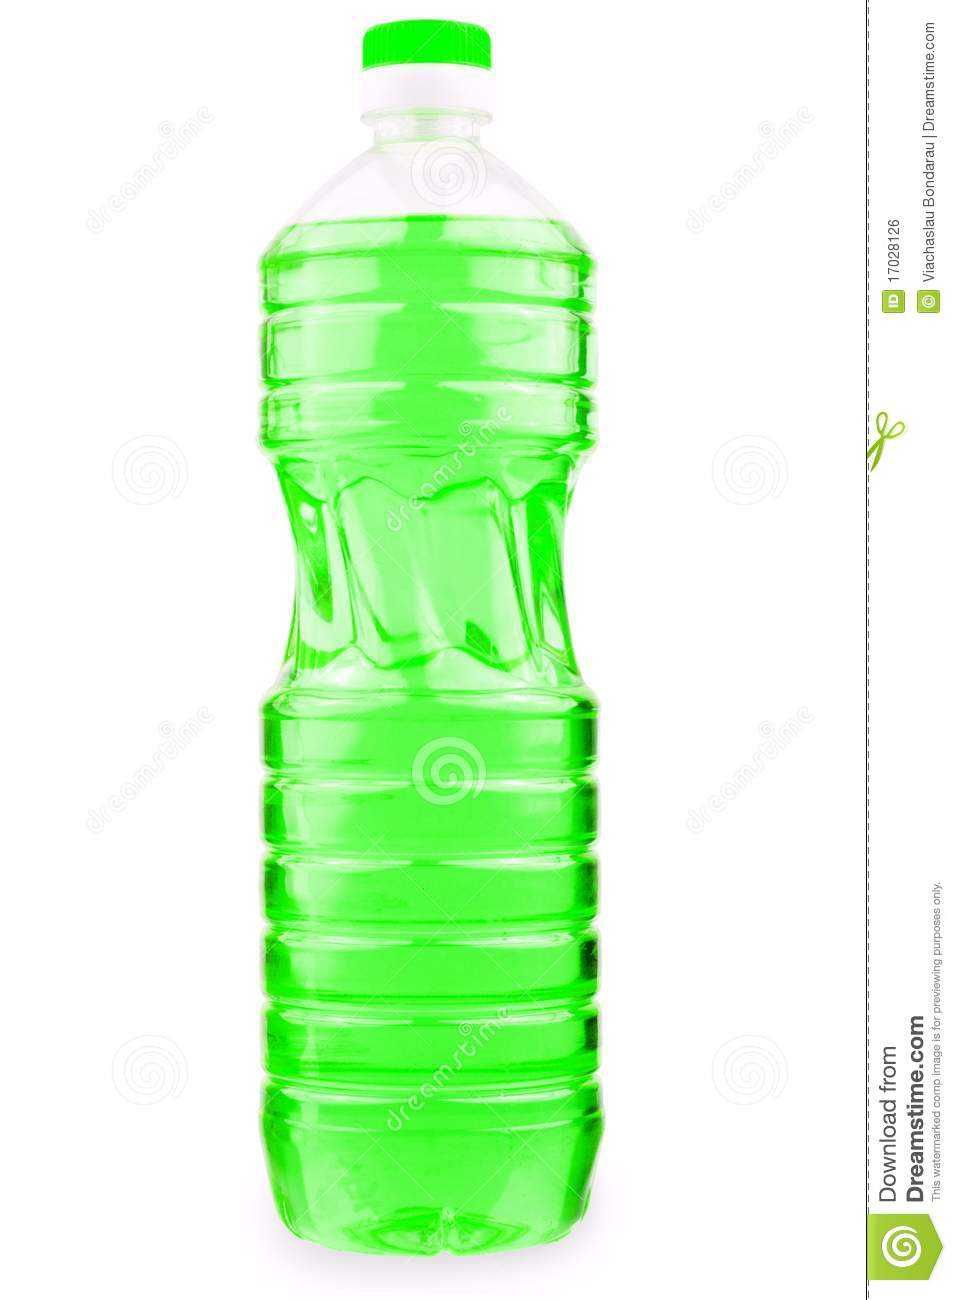 Bottle With Green Liquid Stock Photo Image Of Transparent